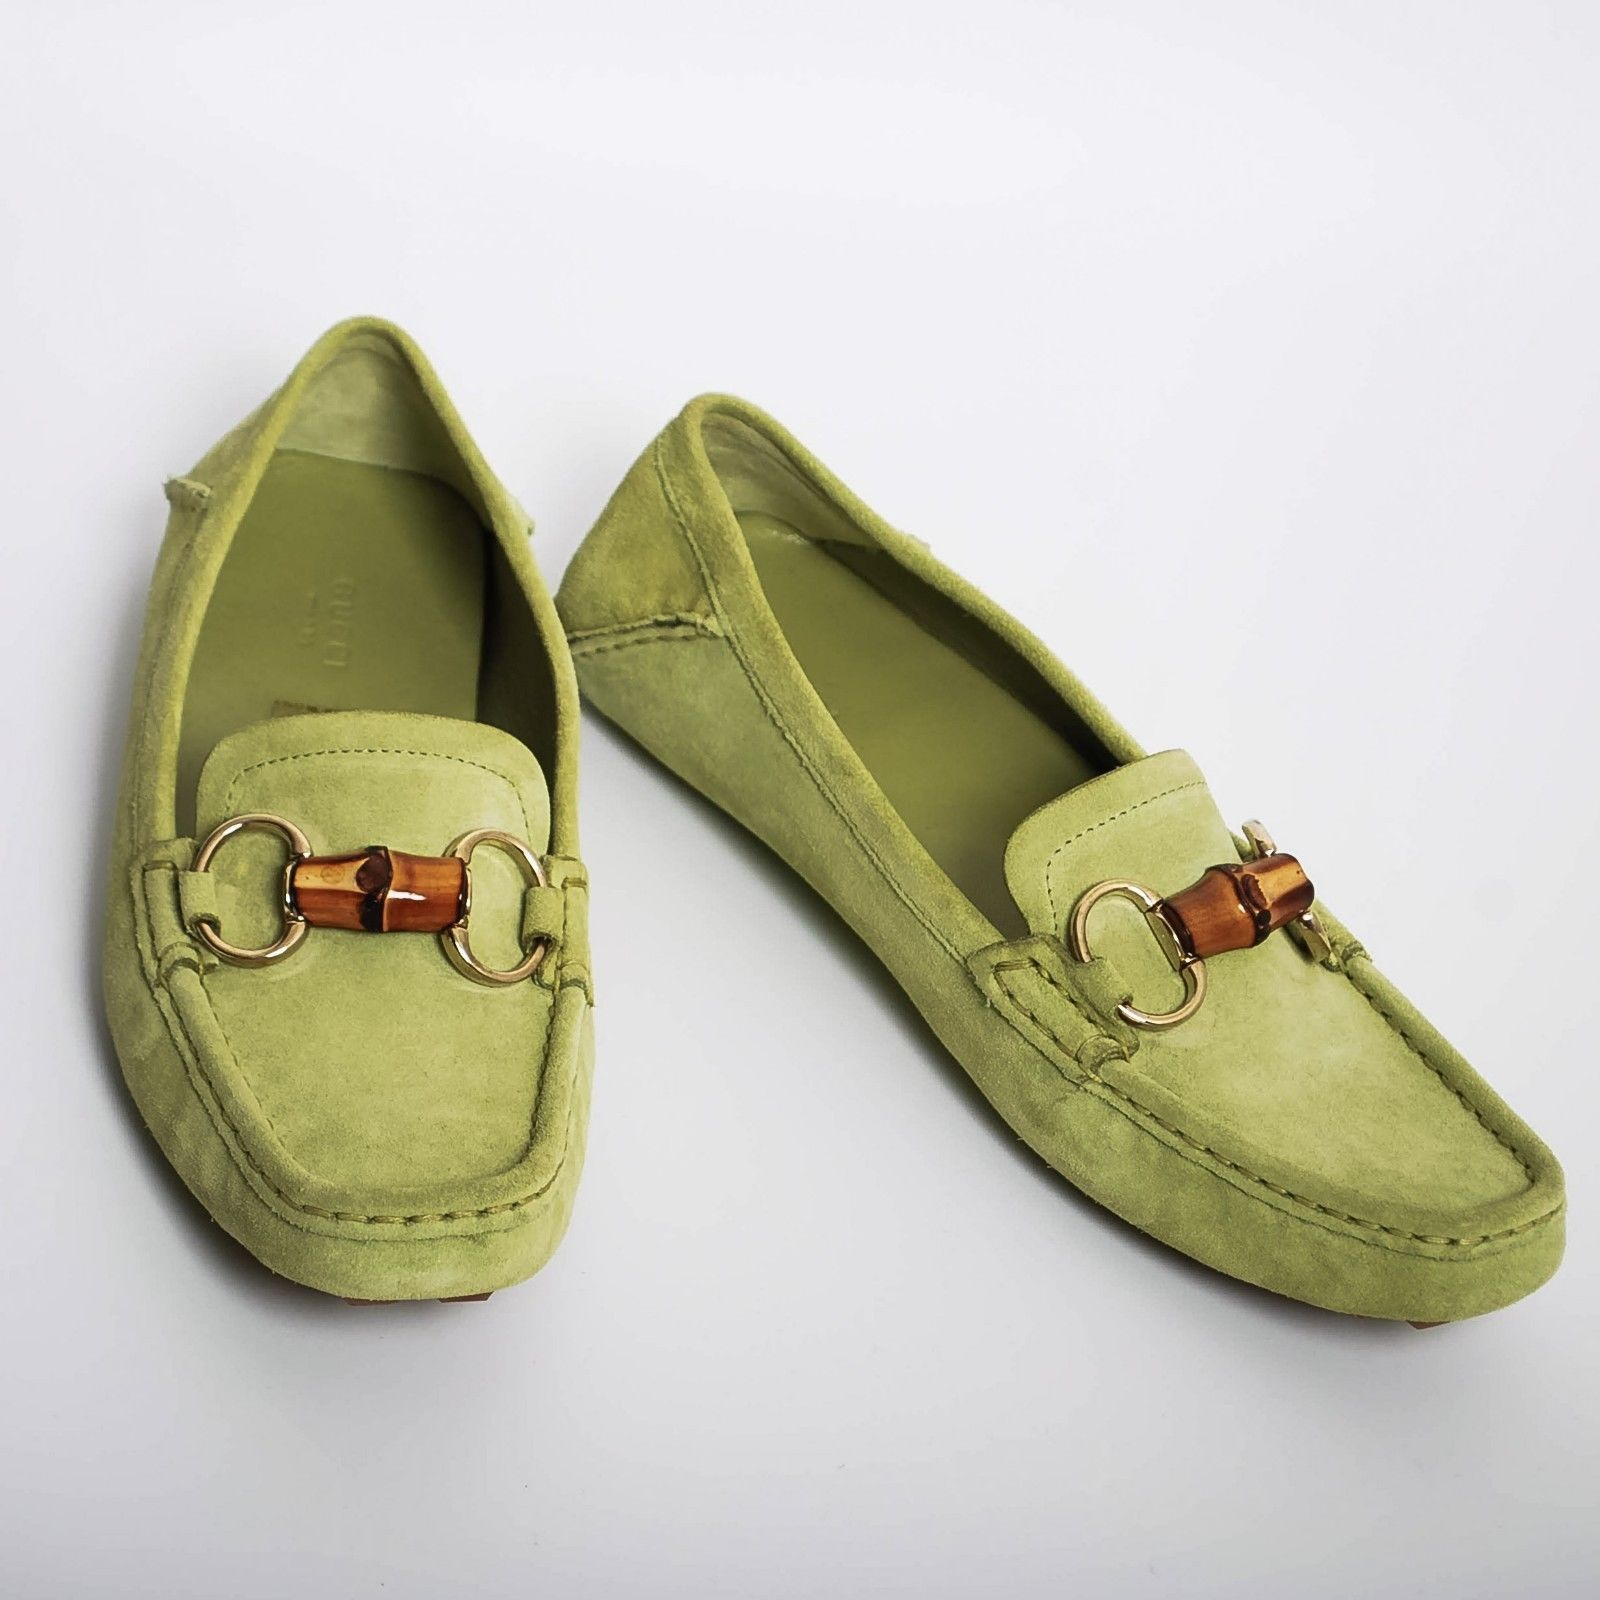 e6a8e4d3b GUCCI Women's Green Suede Moccasins Flat and 50 similar items